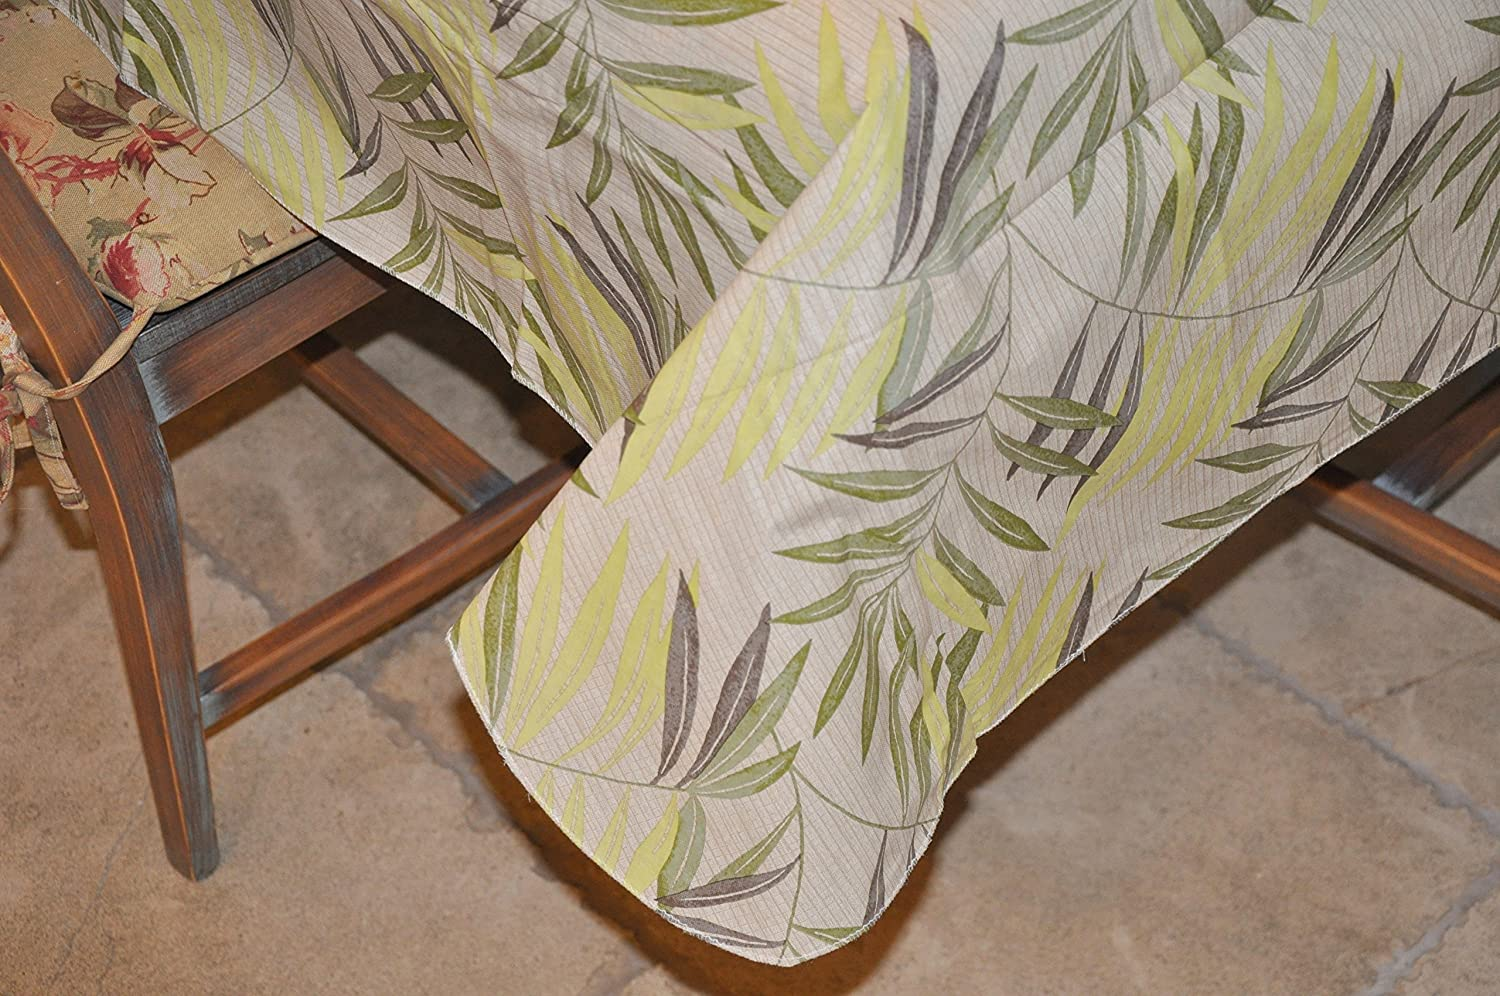 Elastic Edged Flannel Backed Vinyl Fitted Table Cover and Stitched Edge Flannel Backed Vinyl Tablecloth 54 x 72 Drop, Contemporary Lemon